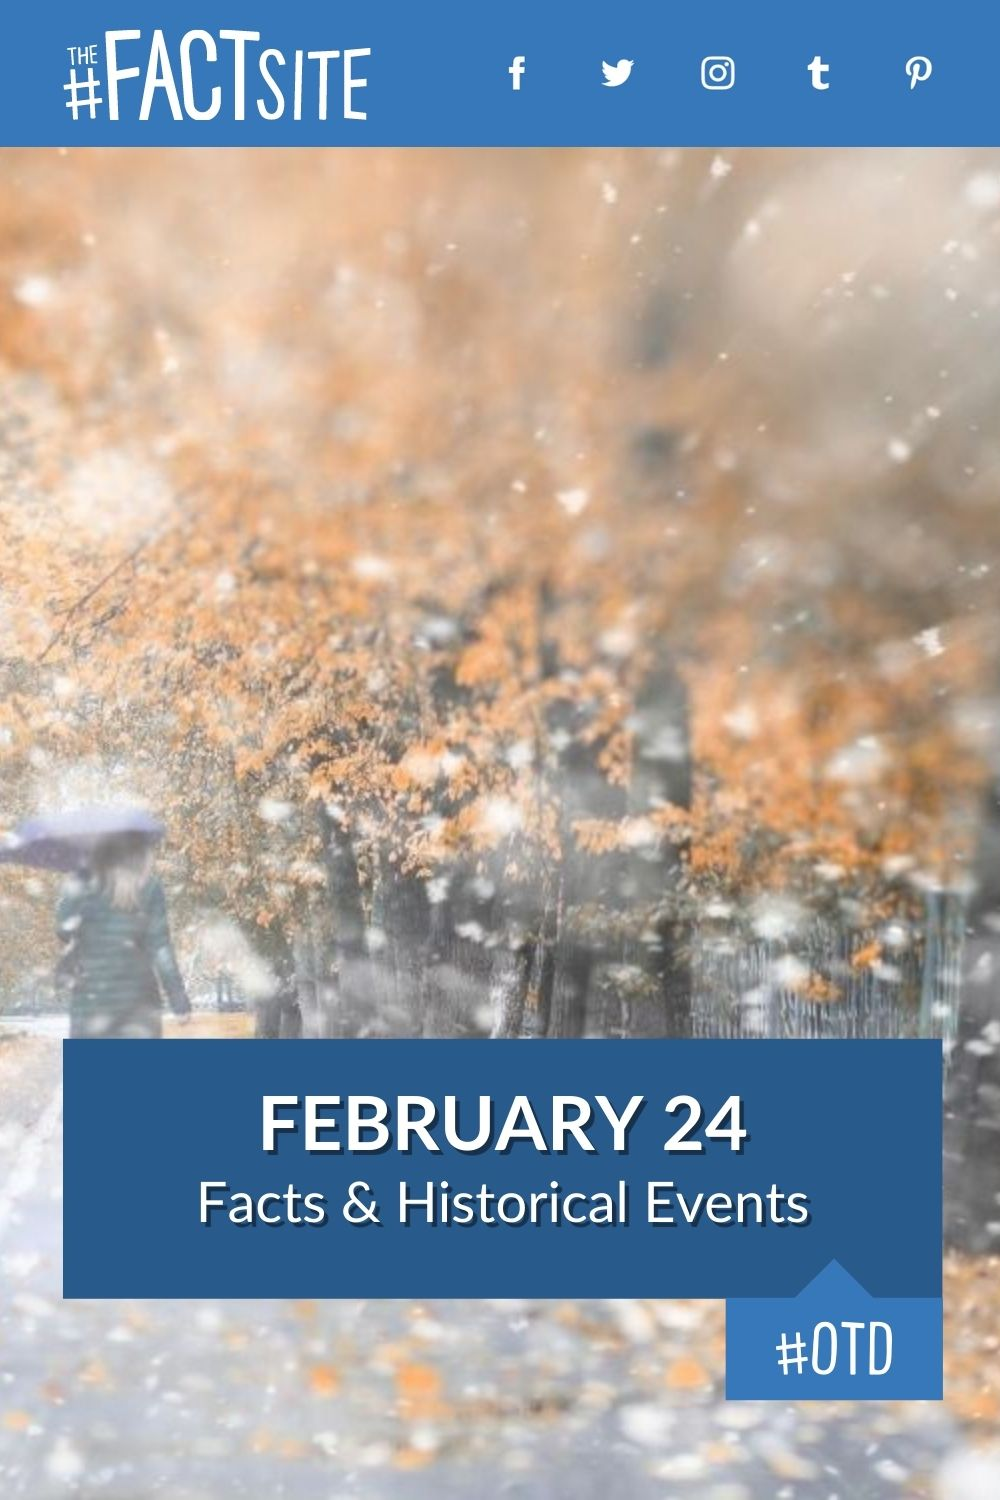 Facts & Historic Events That Happened on February 24